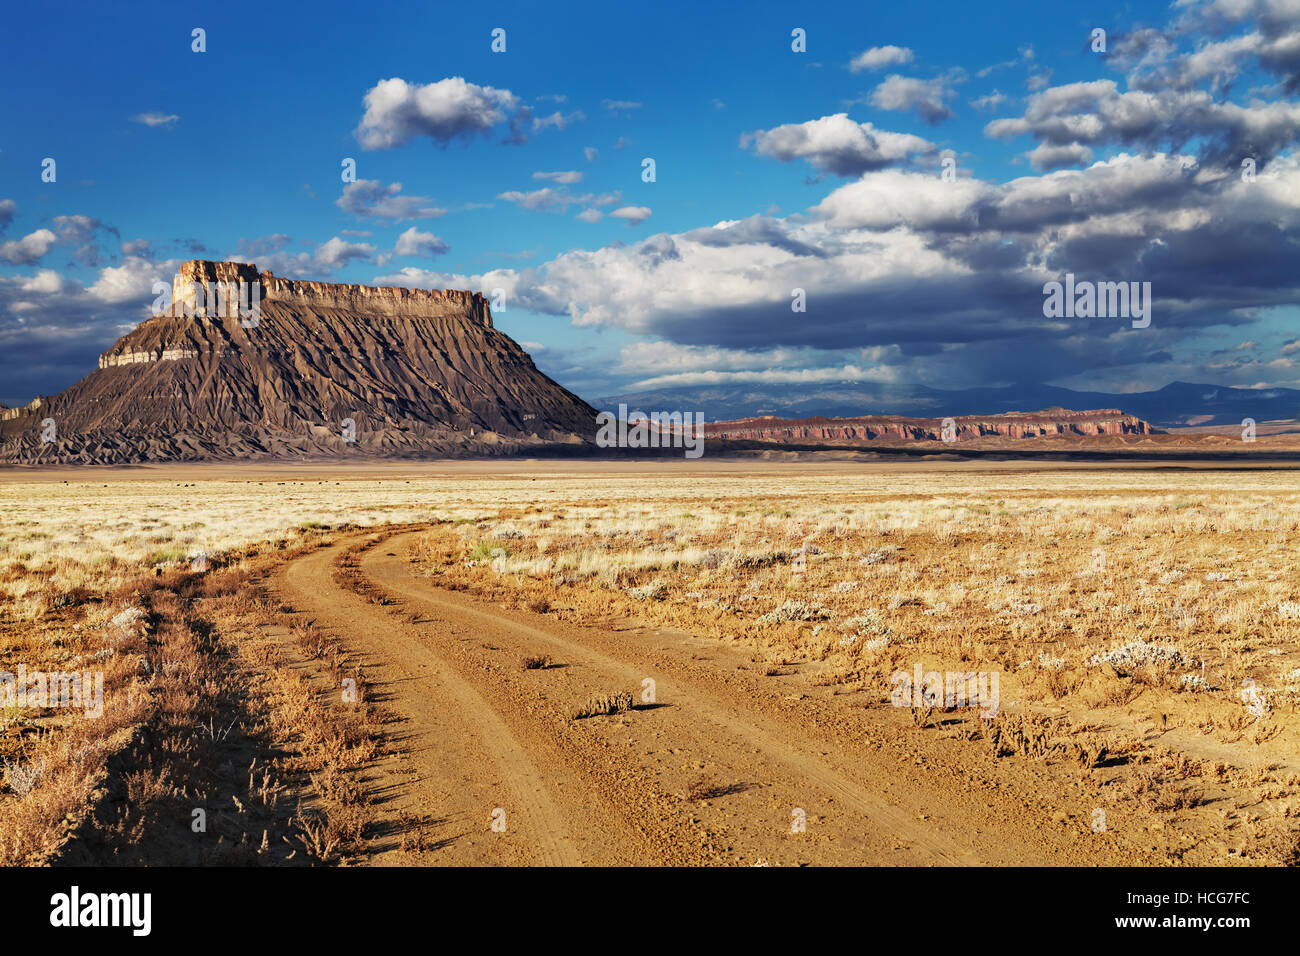 Factory Butte, isolated flat-topped sandstone mountain in Utah desert, USA - Stock Image